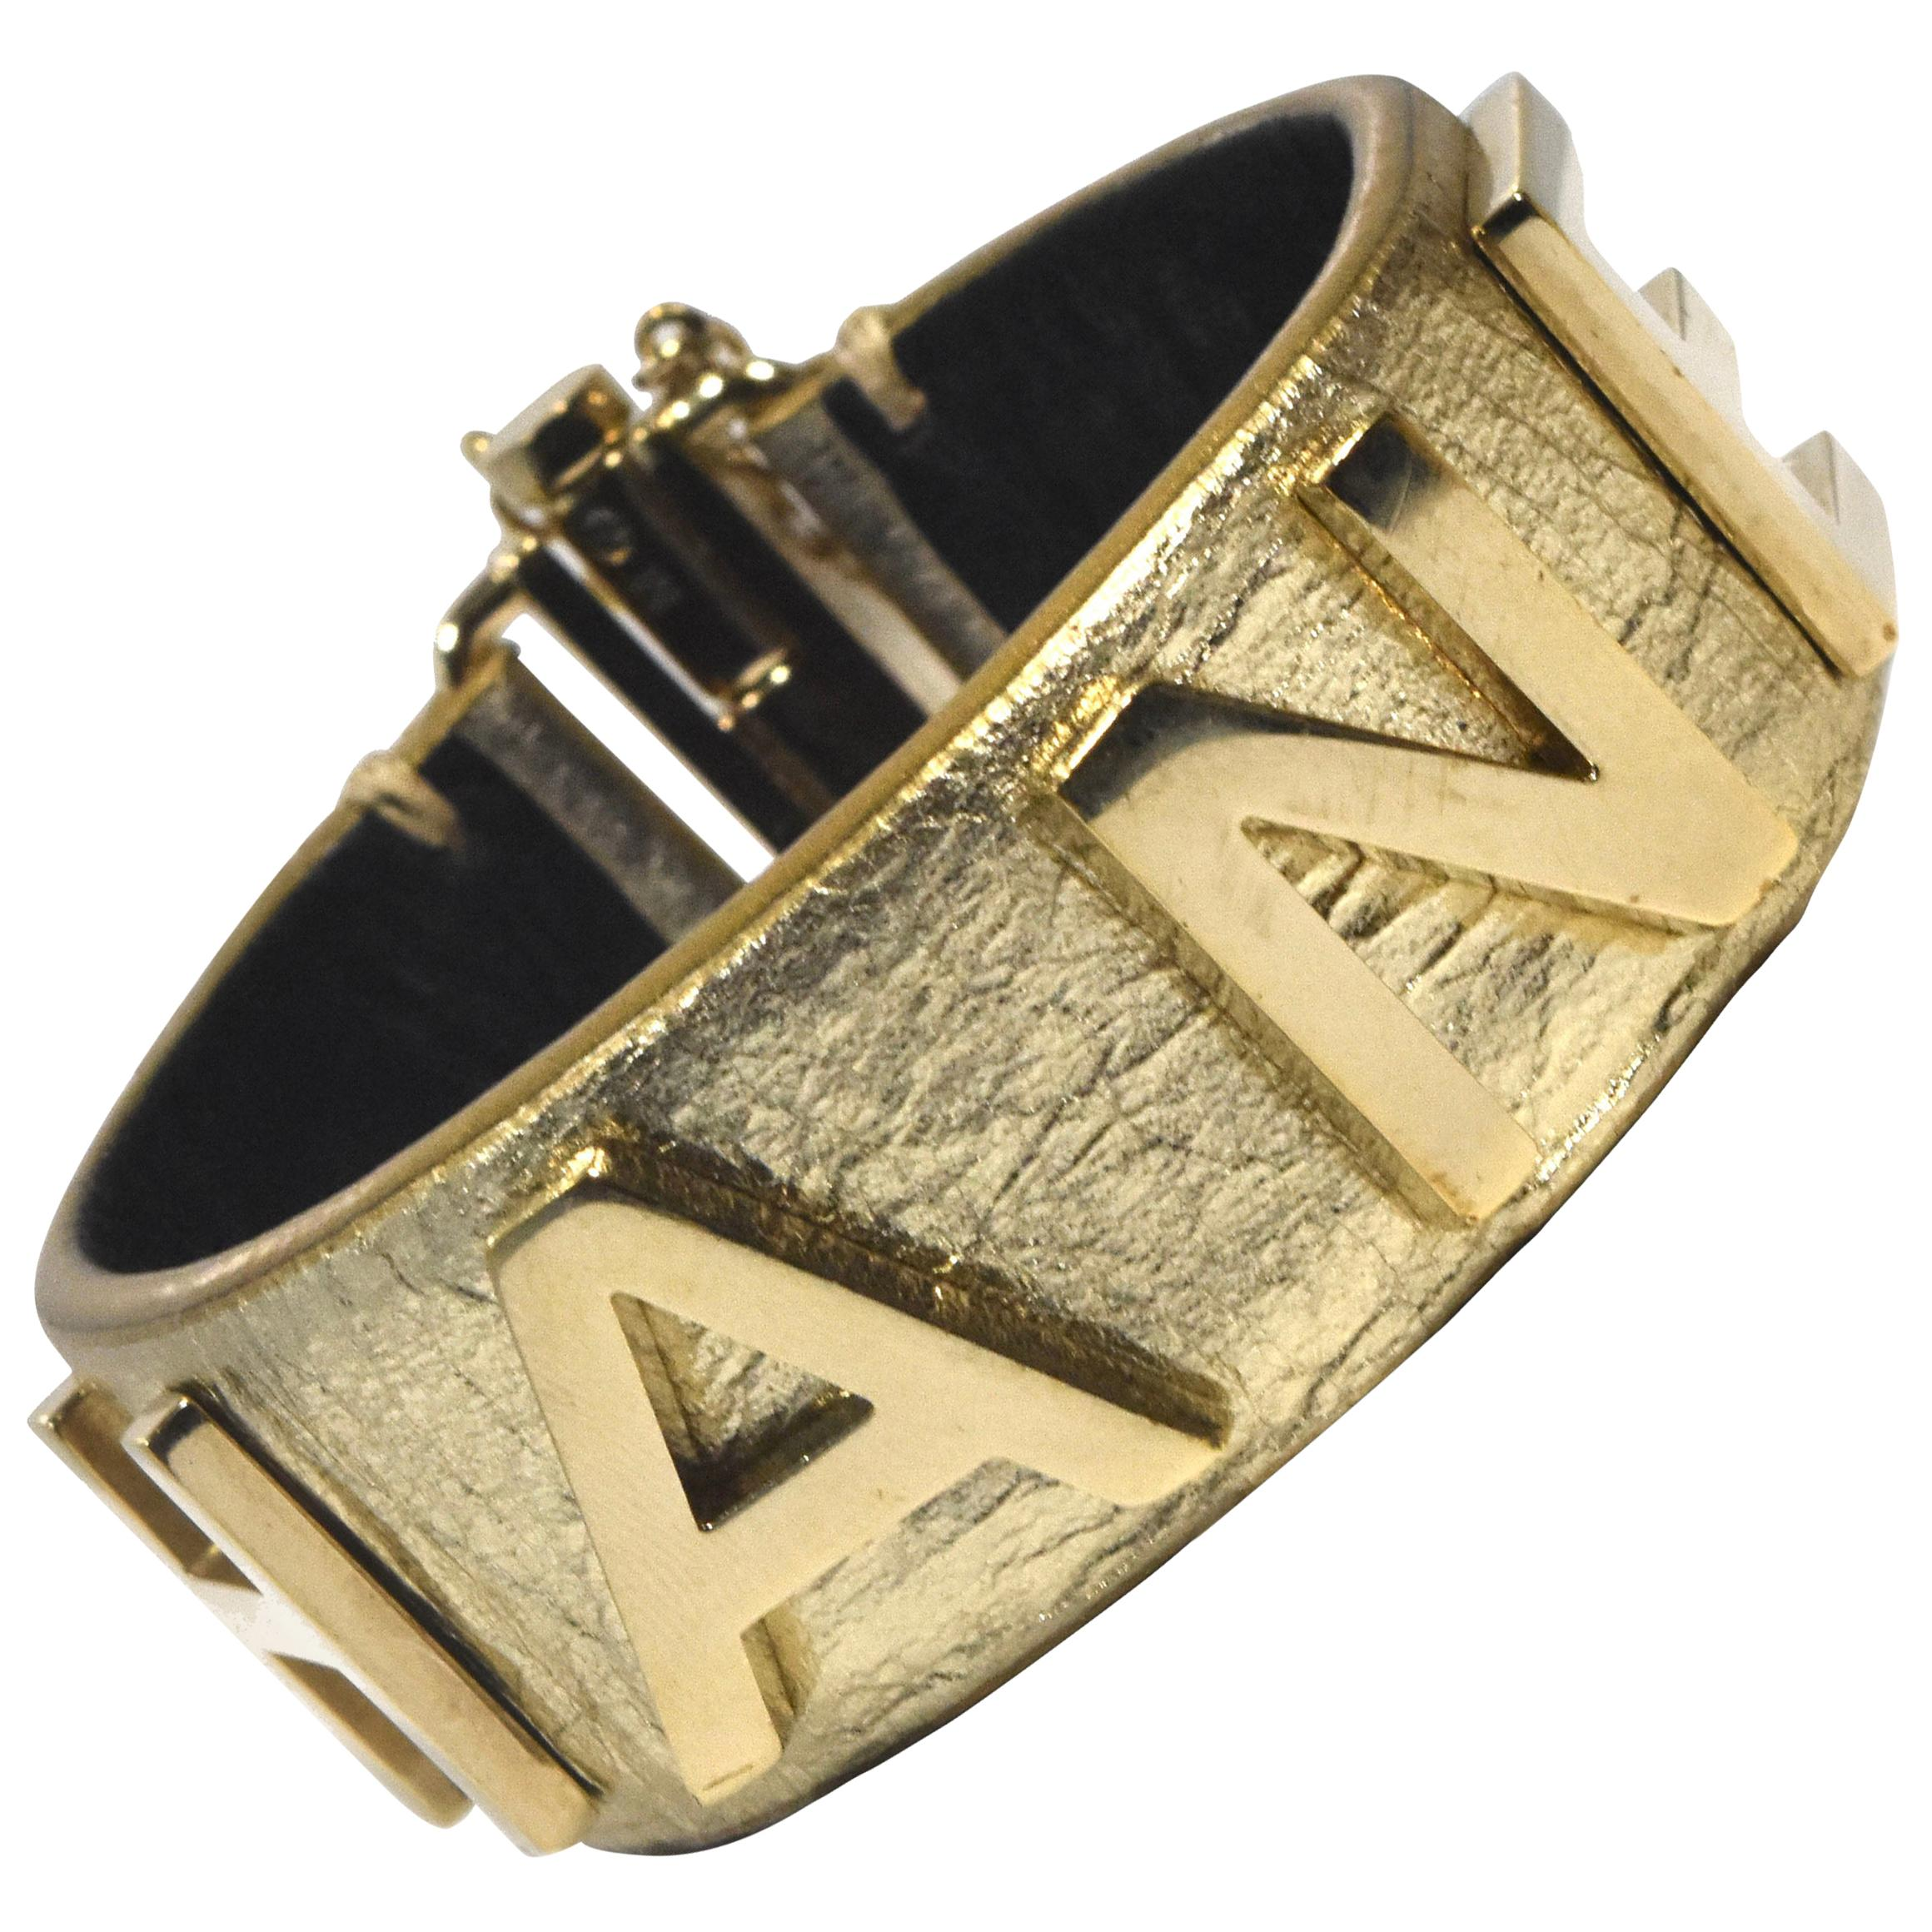 Authentic Chanel Gold Calfskin Leather Logo Cuff Bracelet